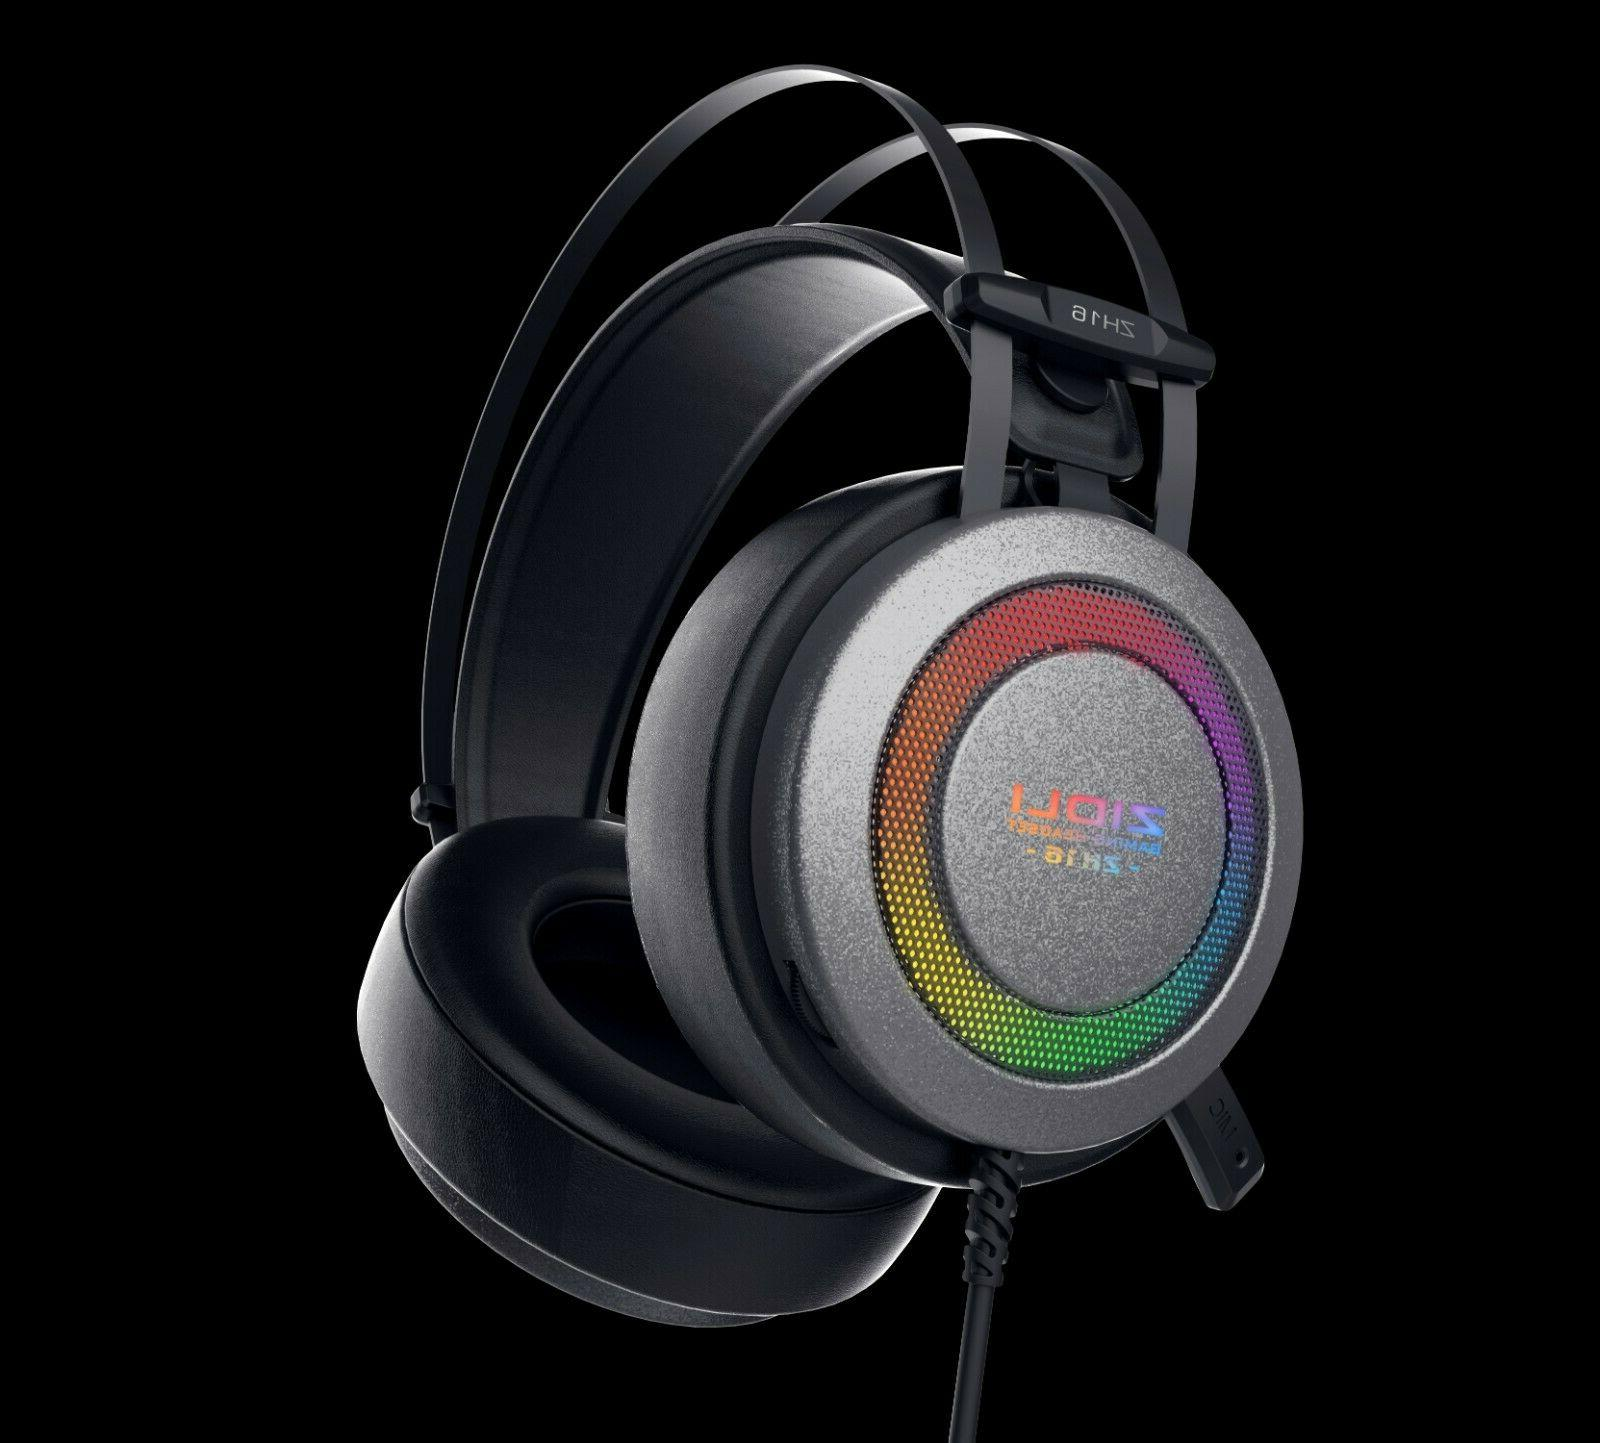 lights gaming headset zidli zh16 for ps4